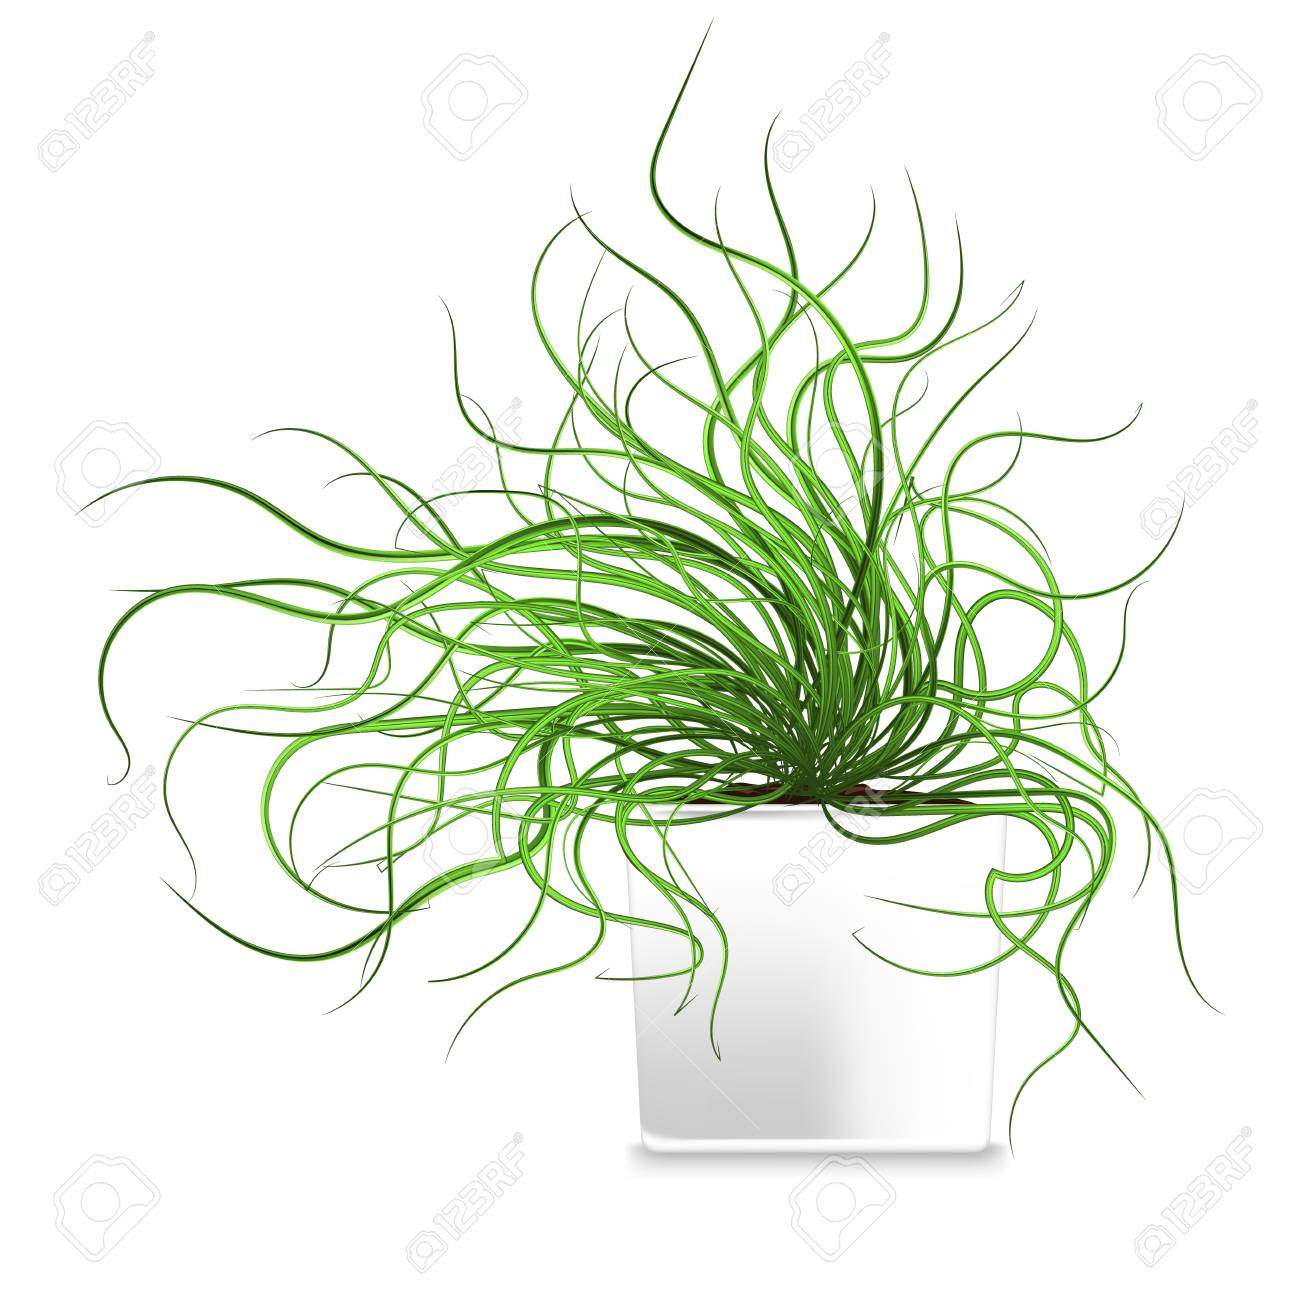 Spotted Plant In A White Pot Element Of Home Decor Vector